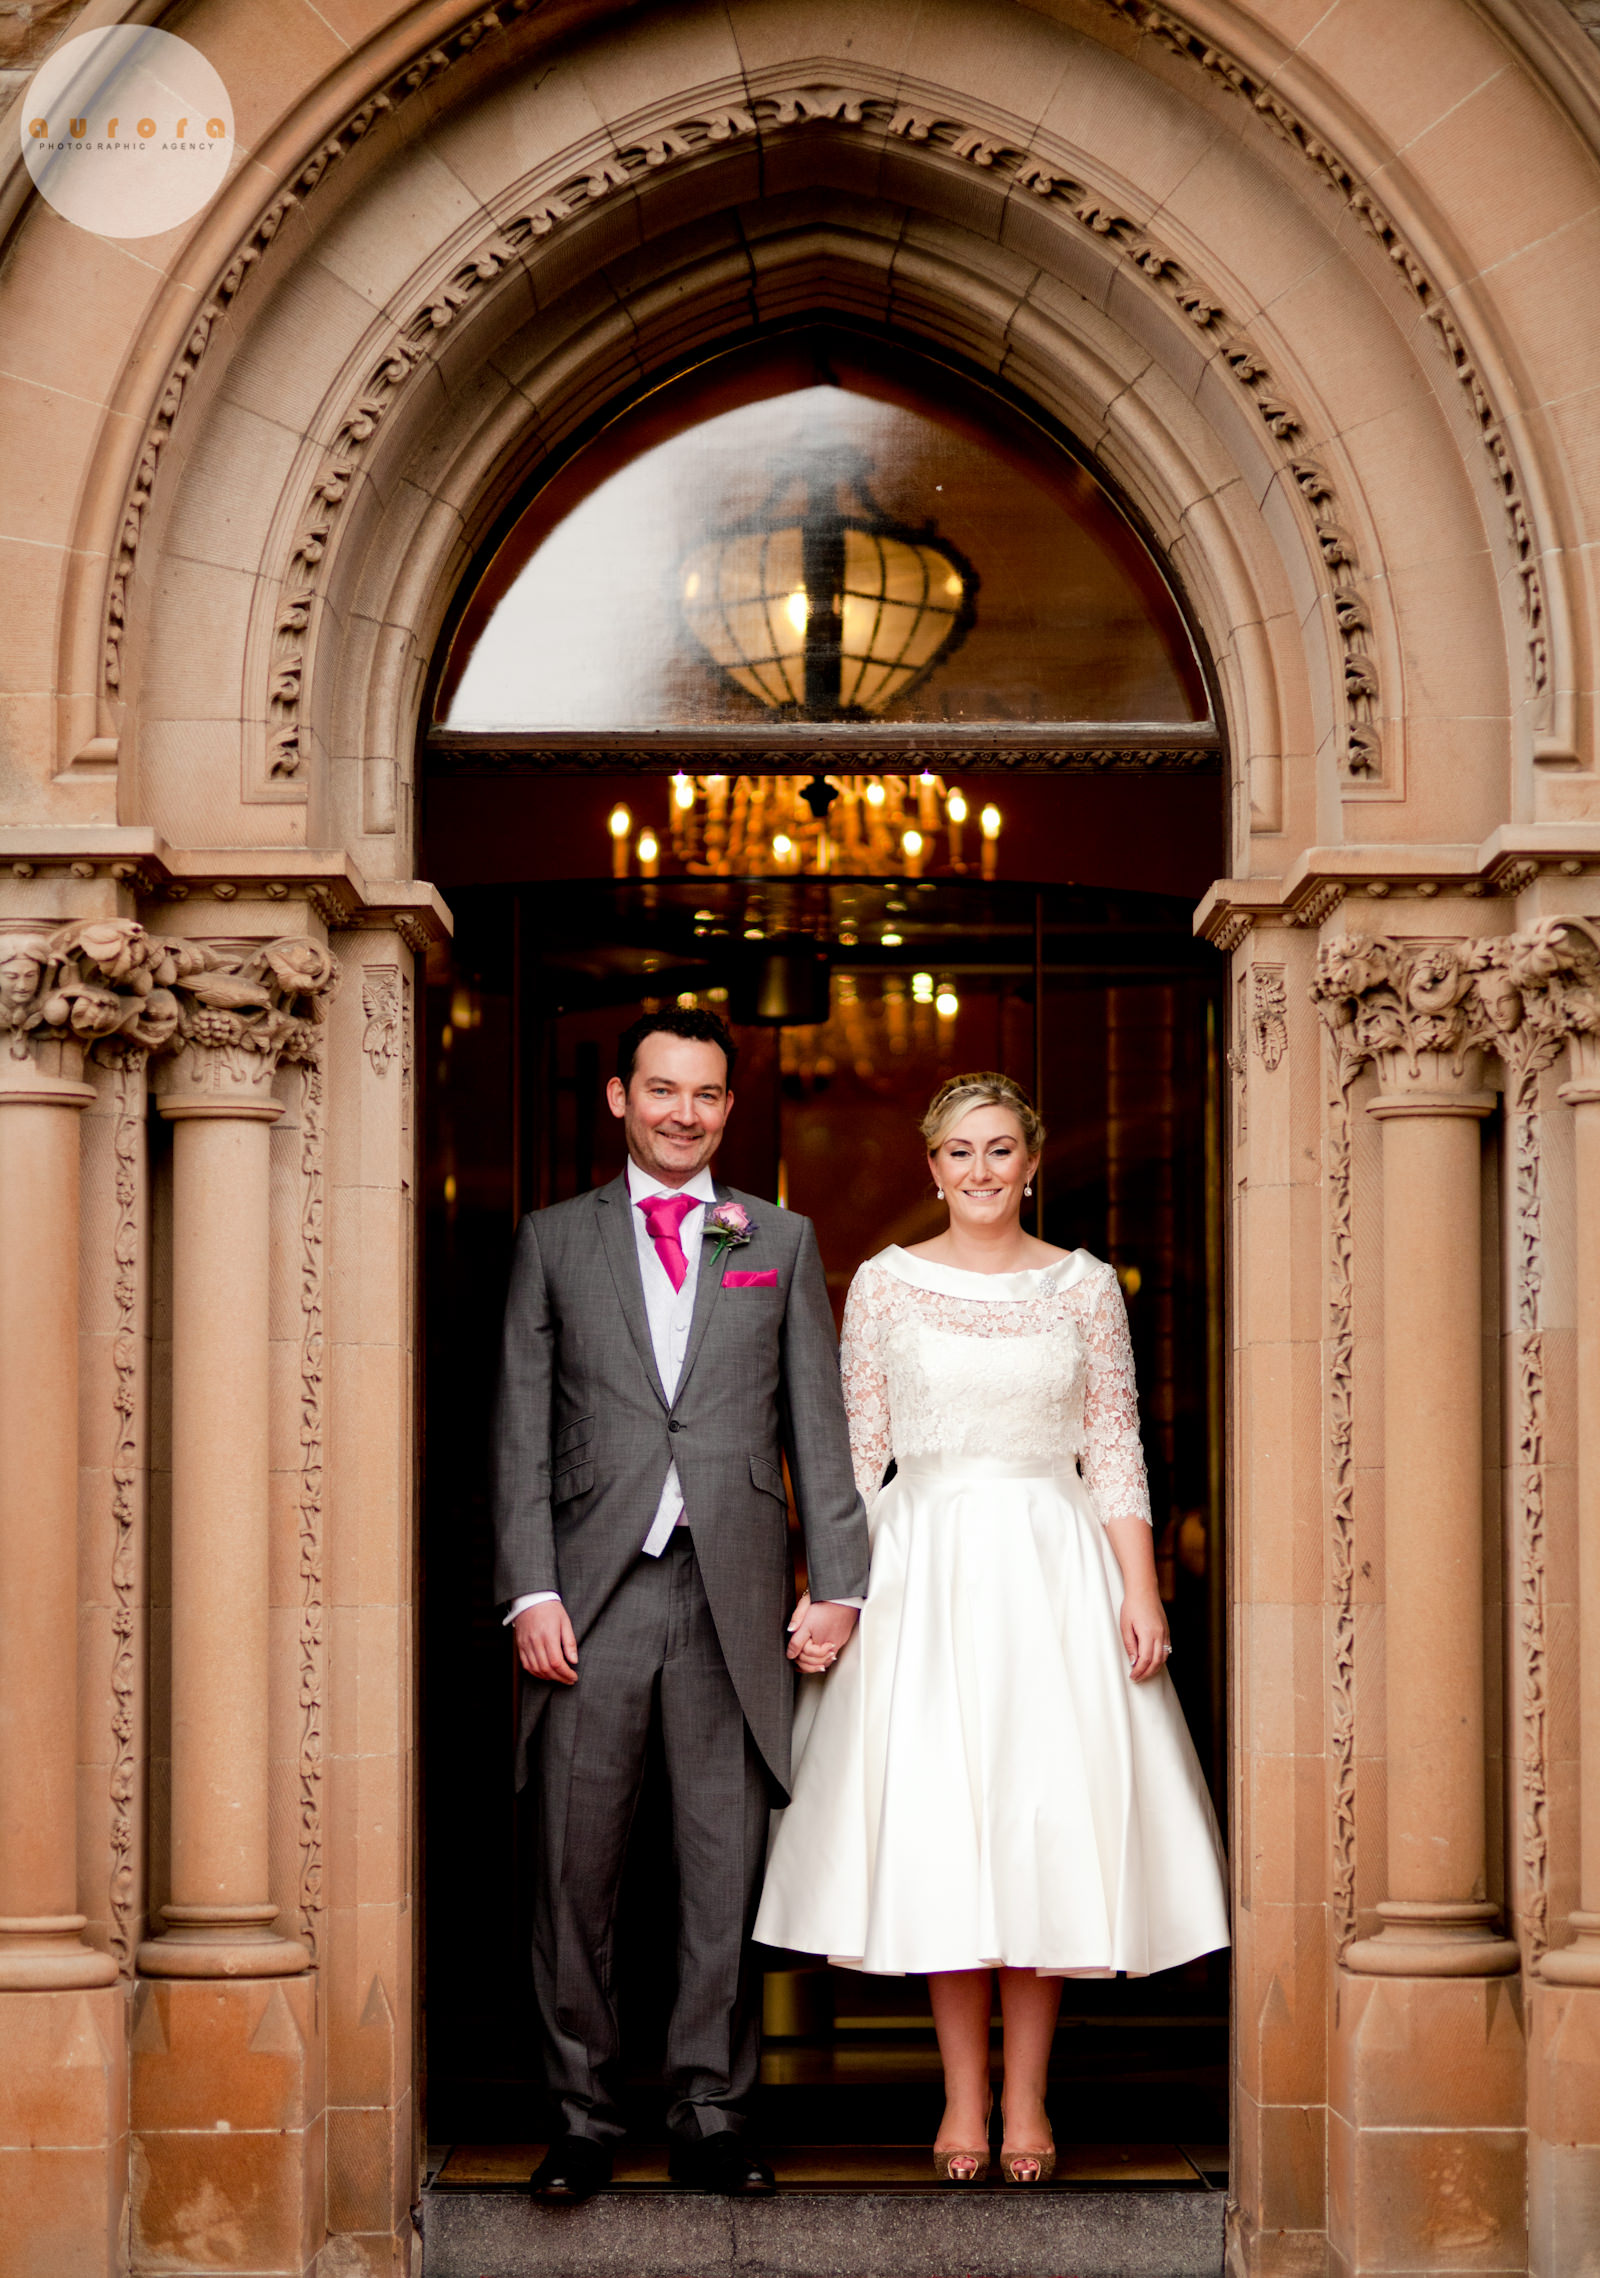 Danielle & Stephen's Wedding – Culloden Estate. Photography By Paul Moane / Aurora Photographic Agency